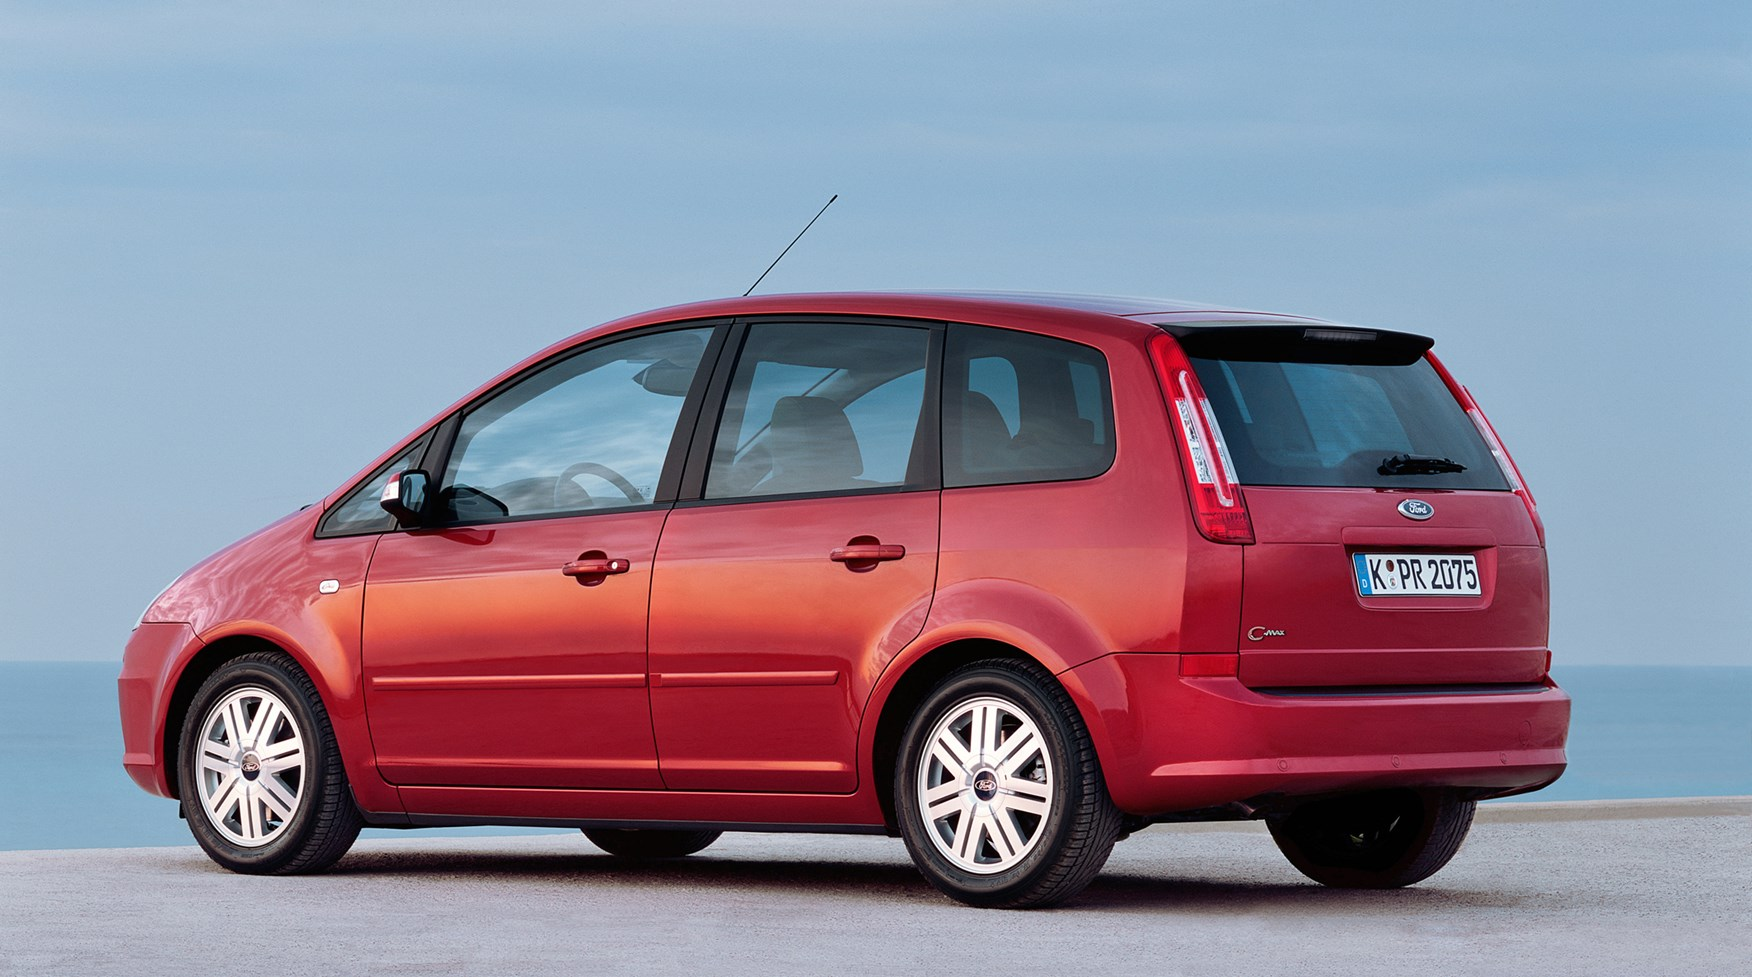 Ford C Max Review >> Ford Focus C-MAX Estate Review (2003 - 2010) | Parkers